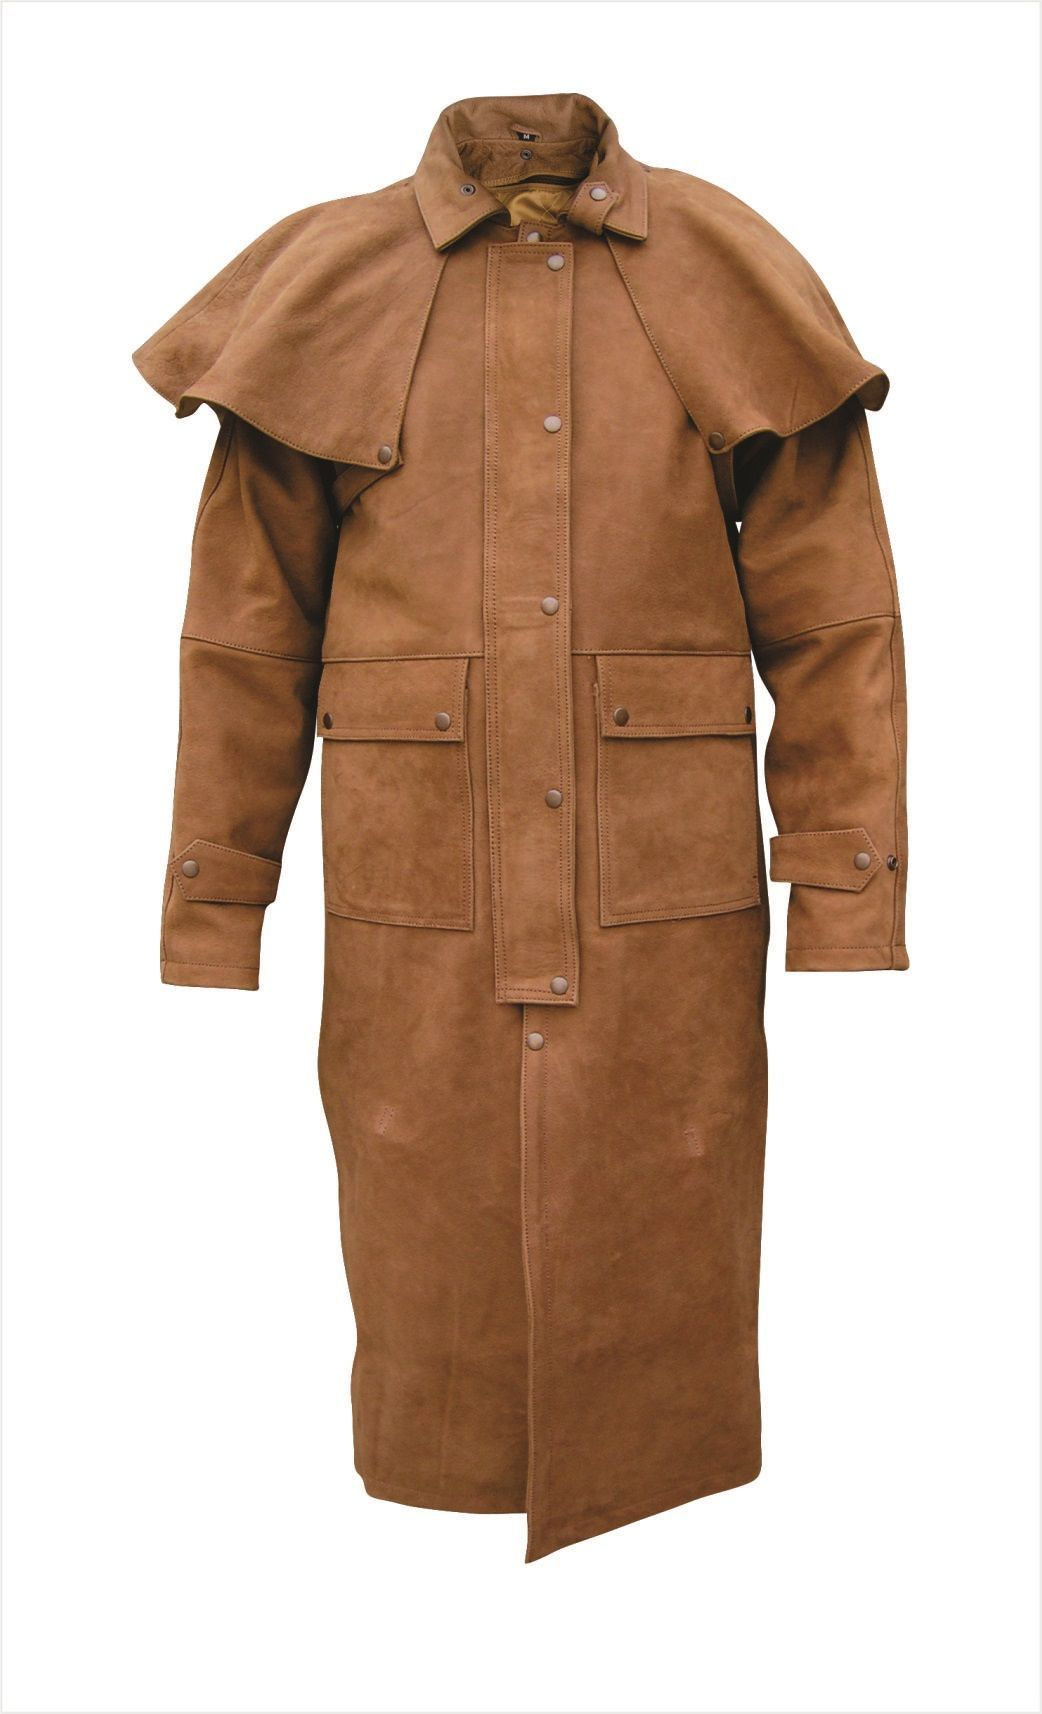 Mens Brown Leather Duster with Leg Straps, ZipOut Liner